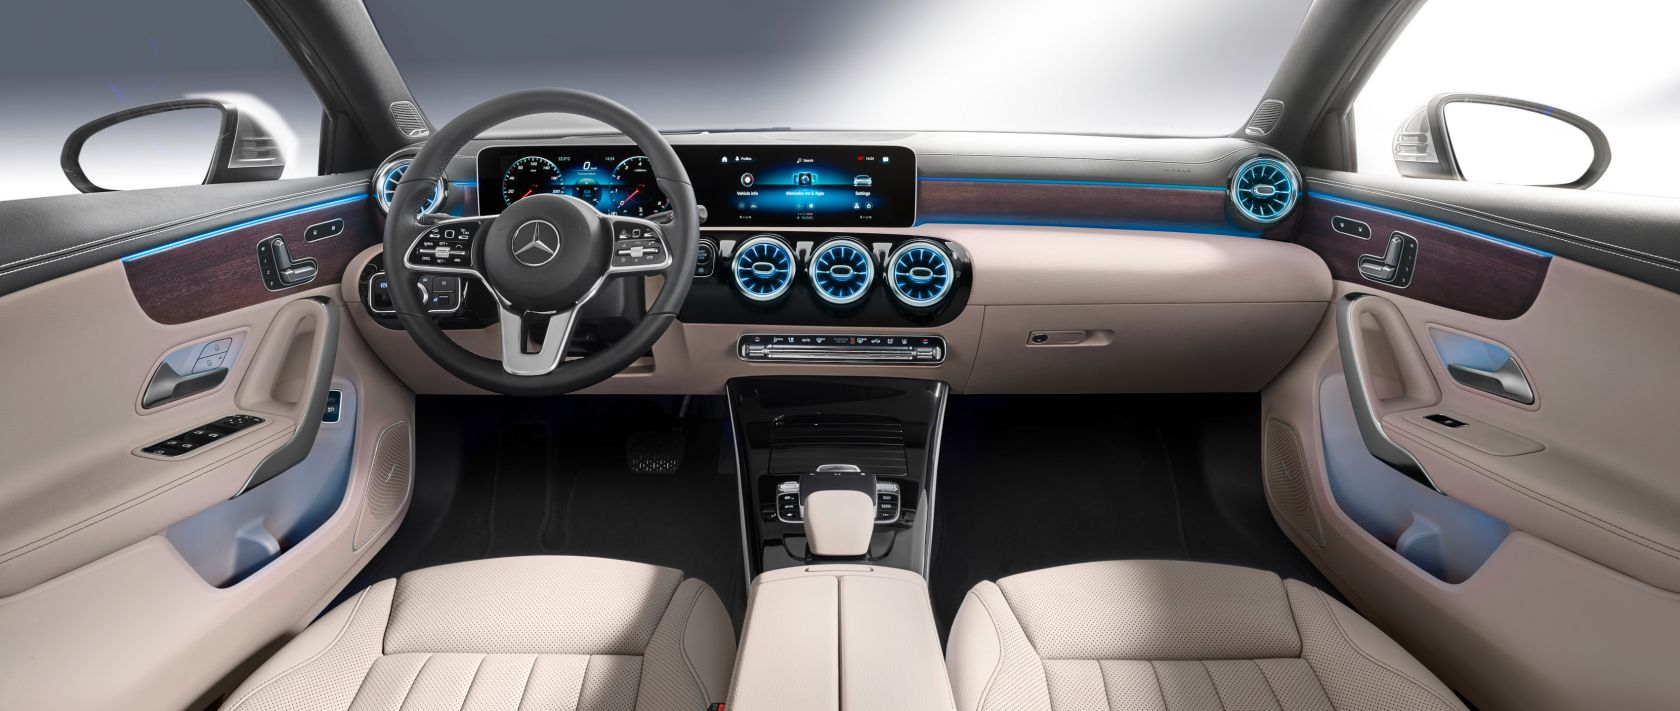 Interior of the new 2019 Mercedes-Benz A-Class Saloon (V 177).